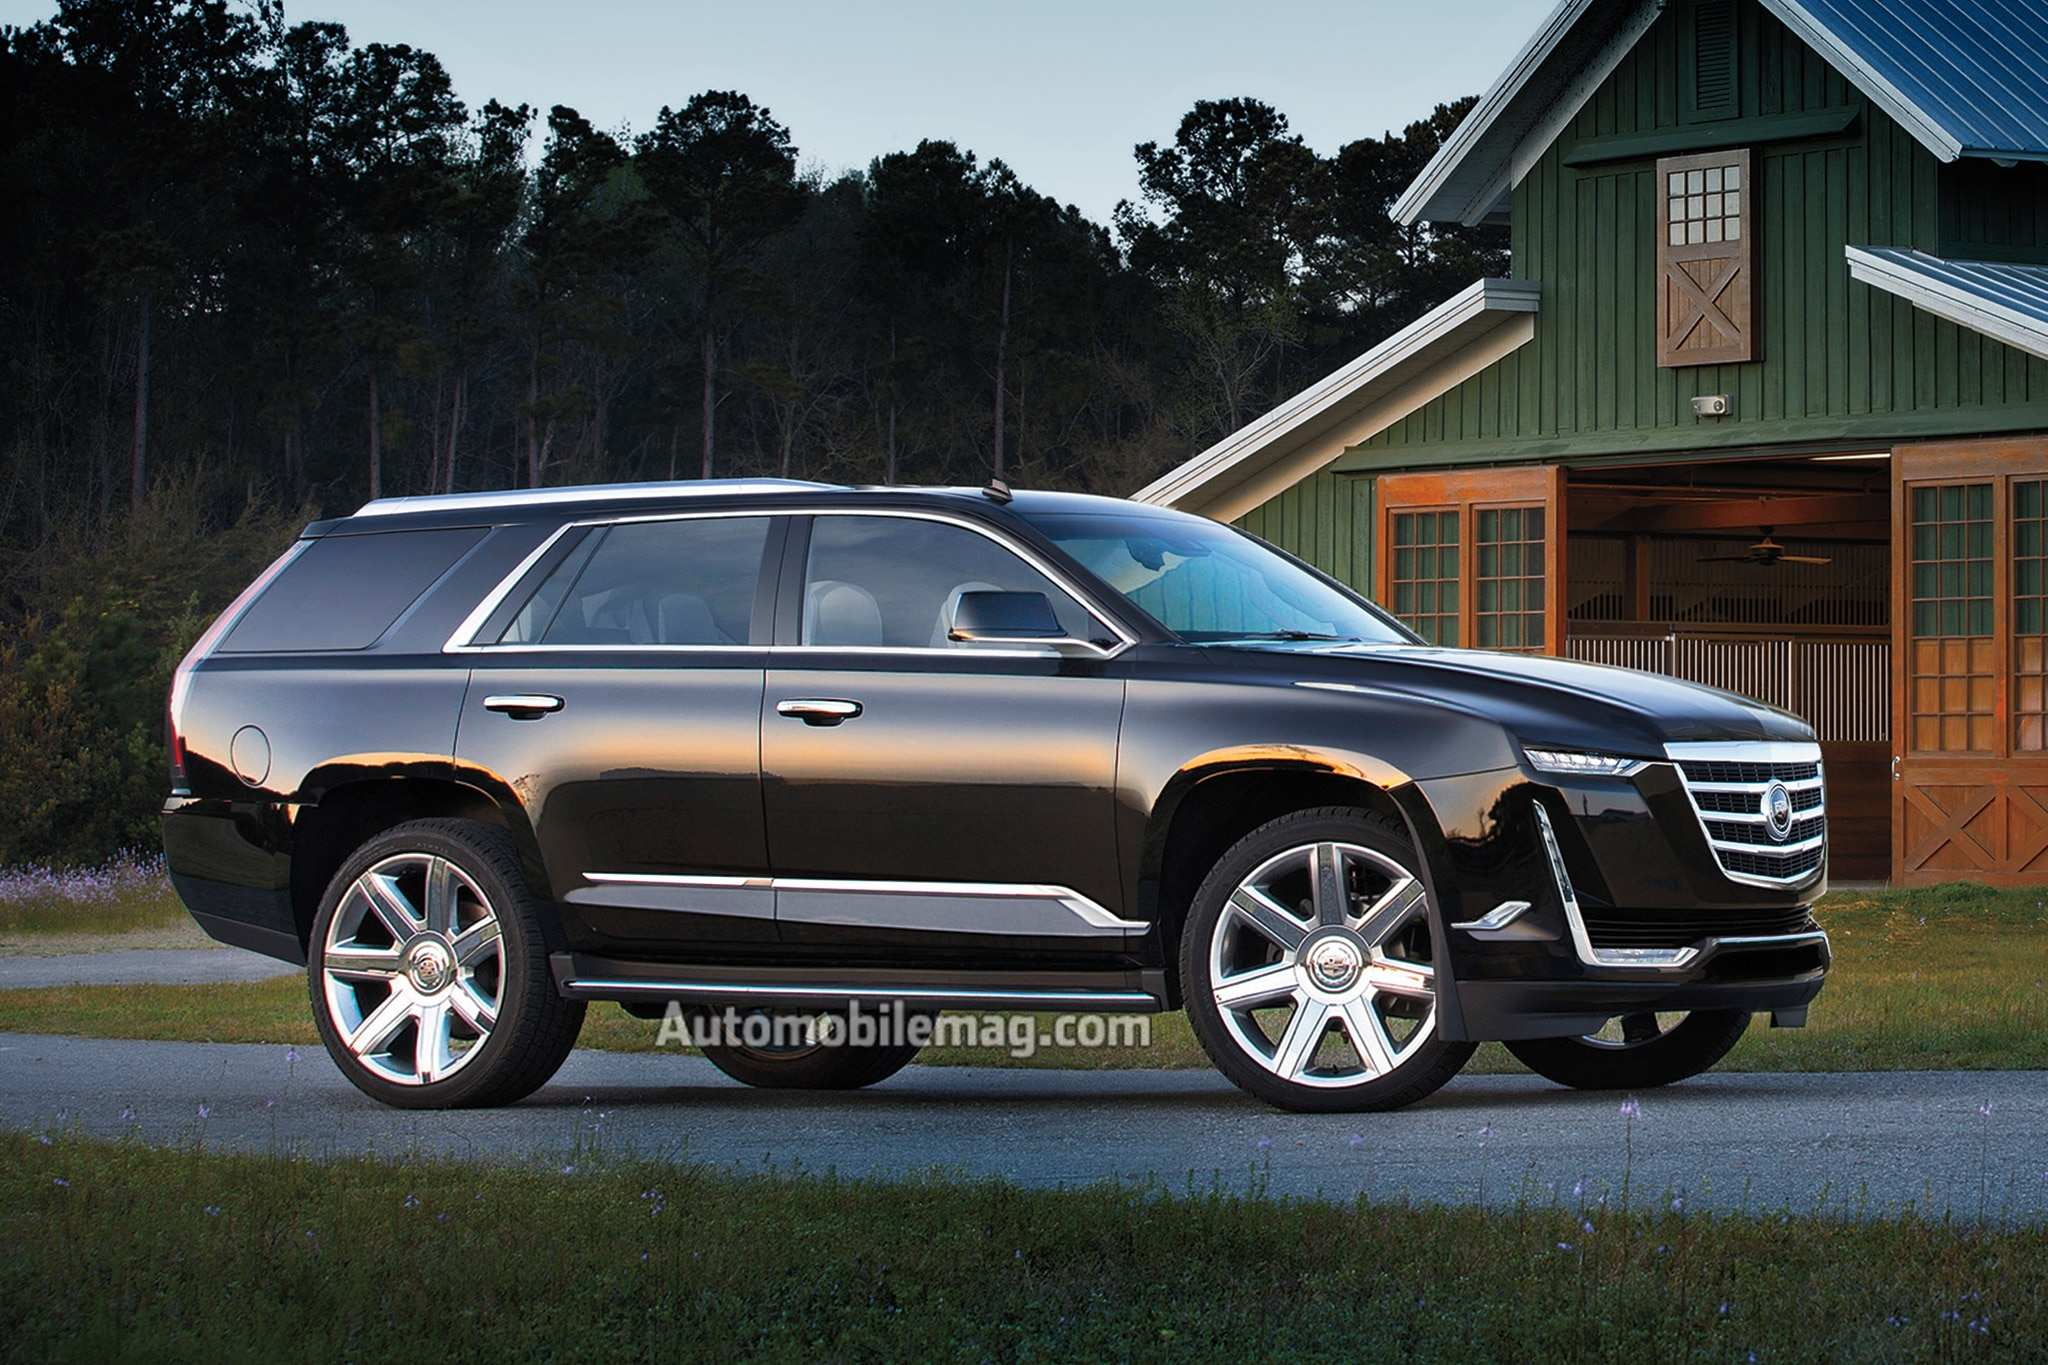 30 Gallery of 2020 Cadillac Escalade For Sale Research New with 2020 Cadillac Escalade For Sale